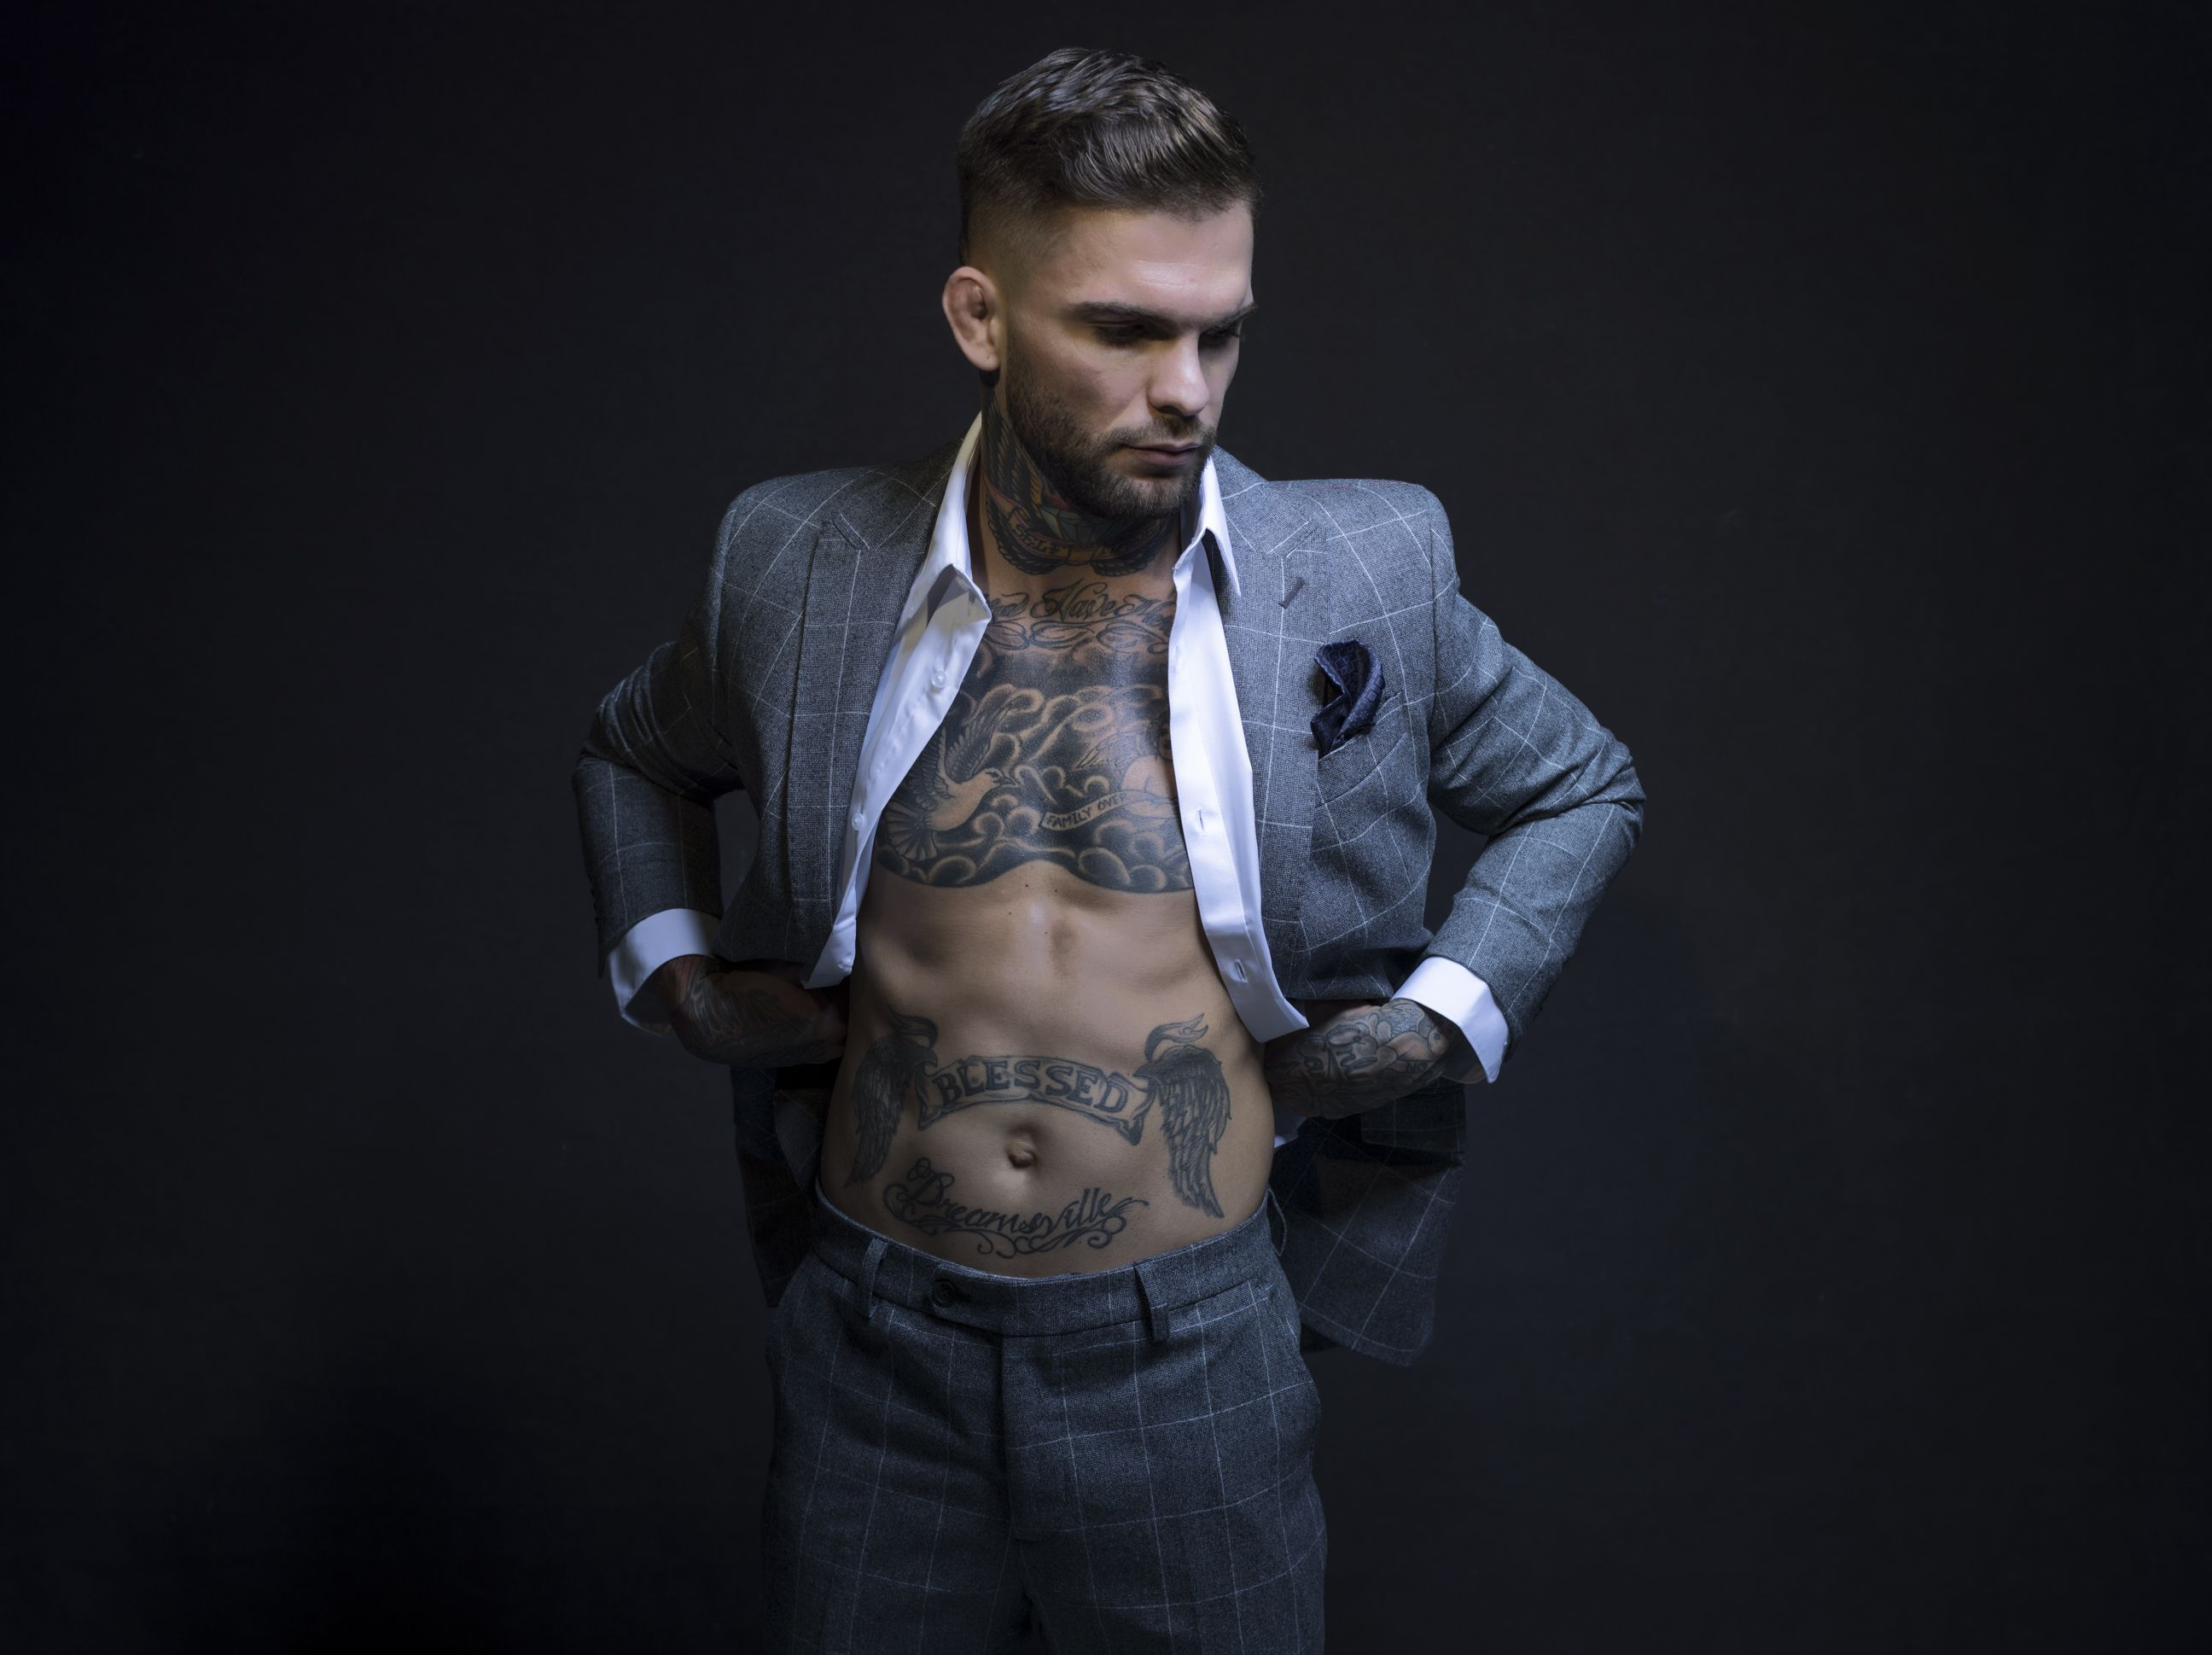 cody garbrandt by lionel deluy men pinterest cody garbrandt